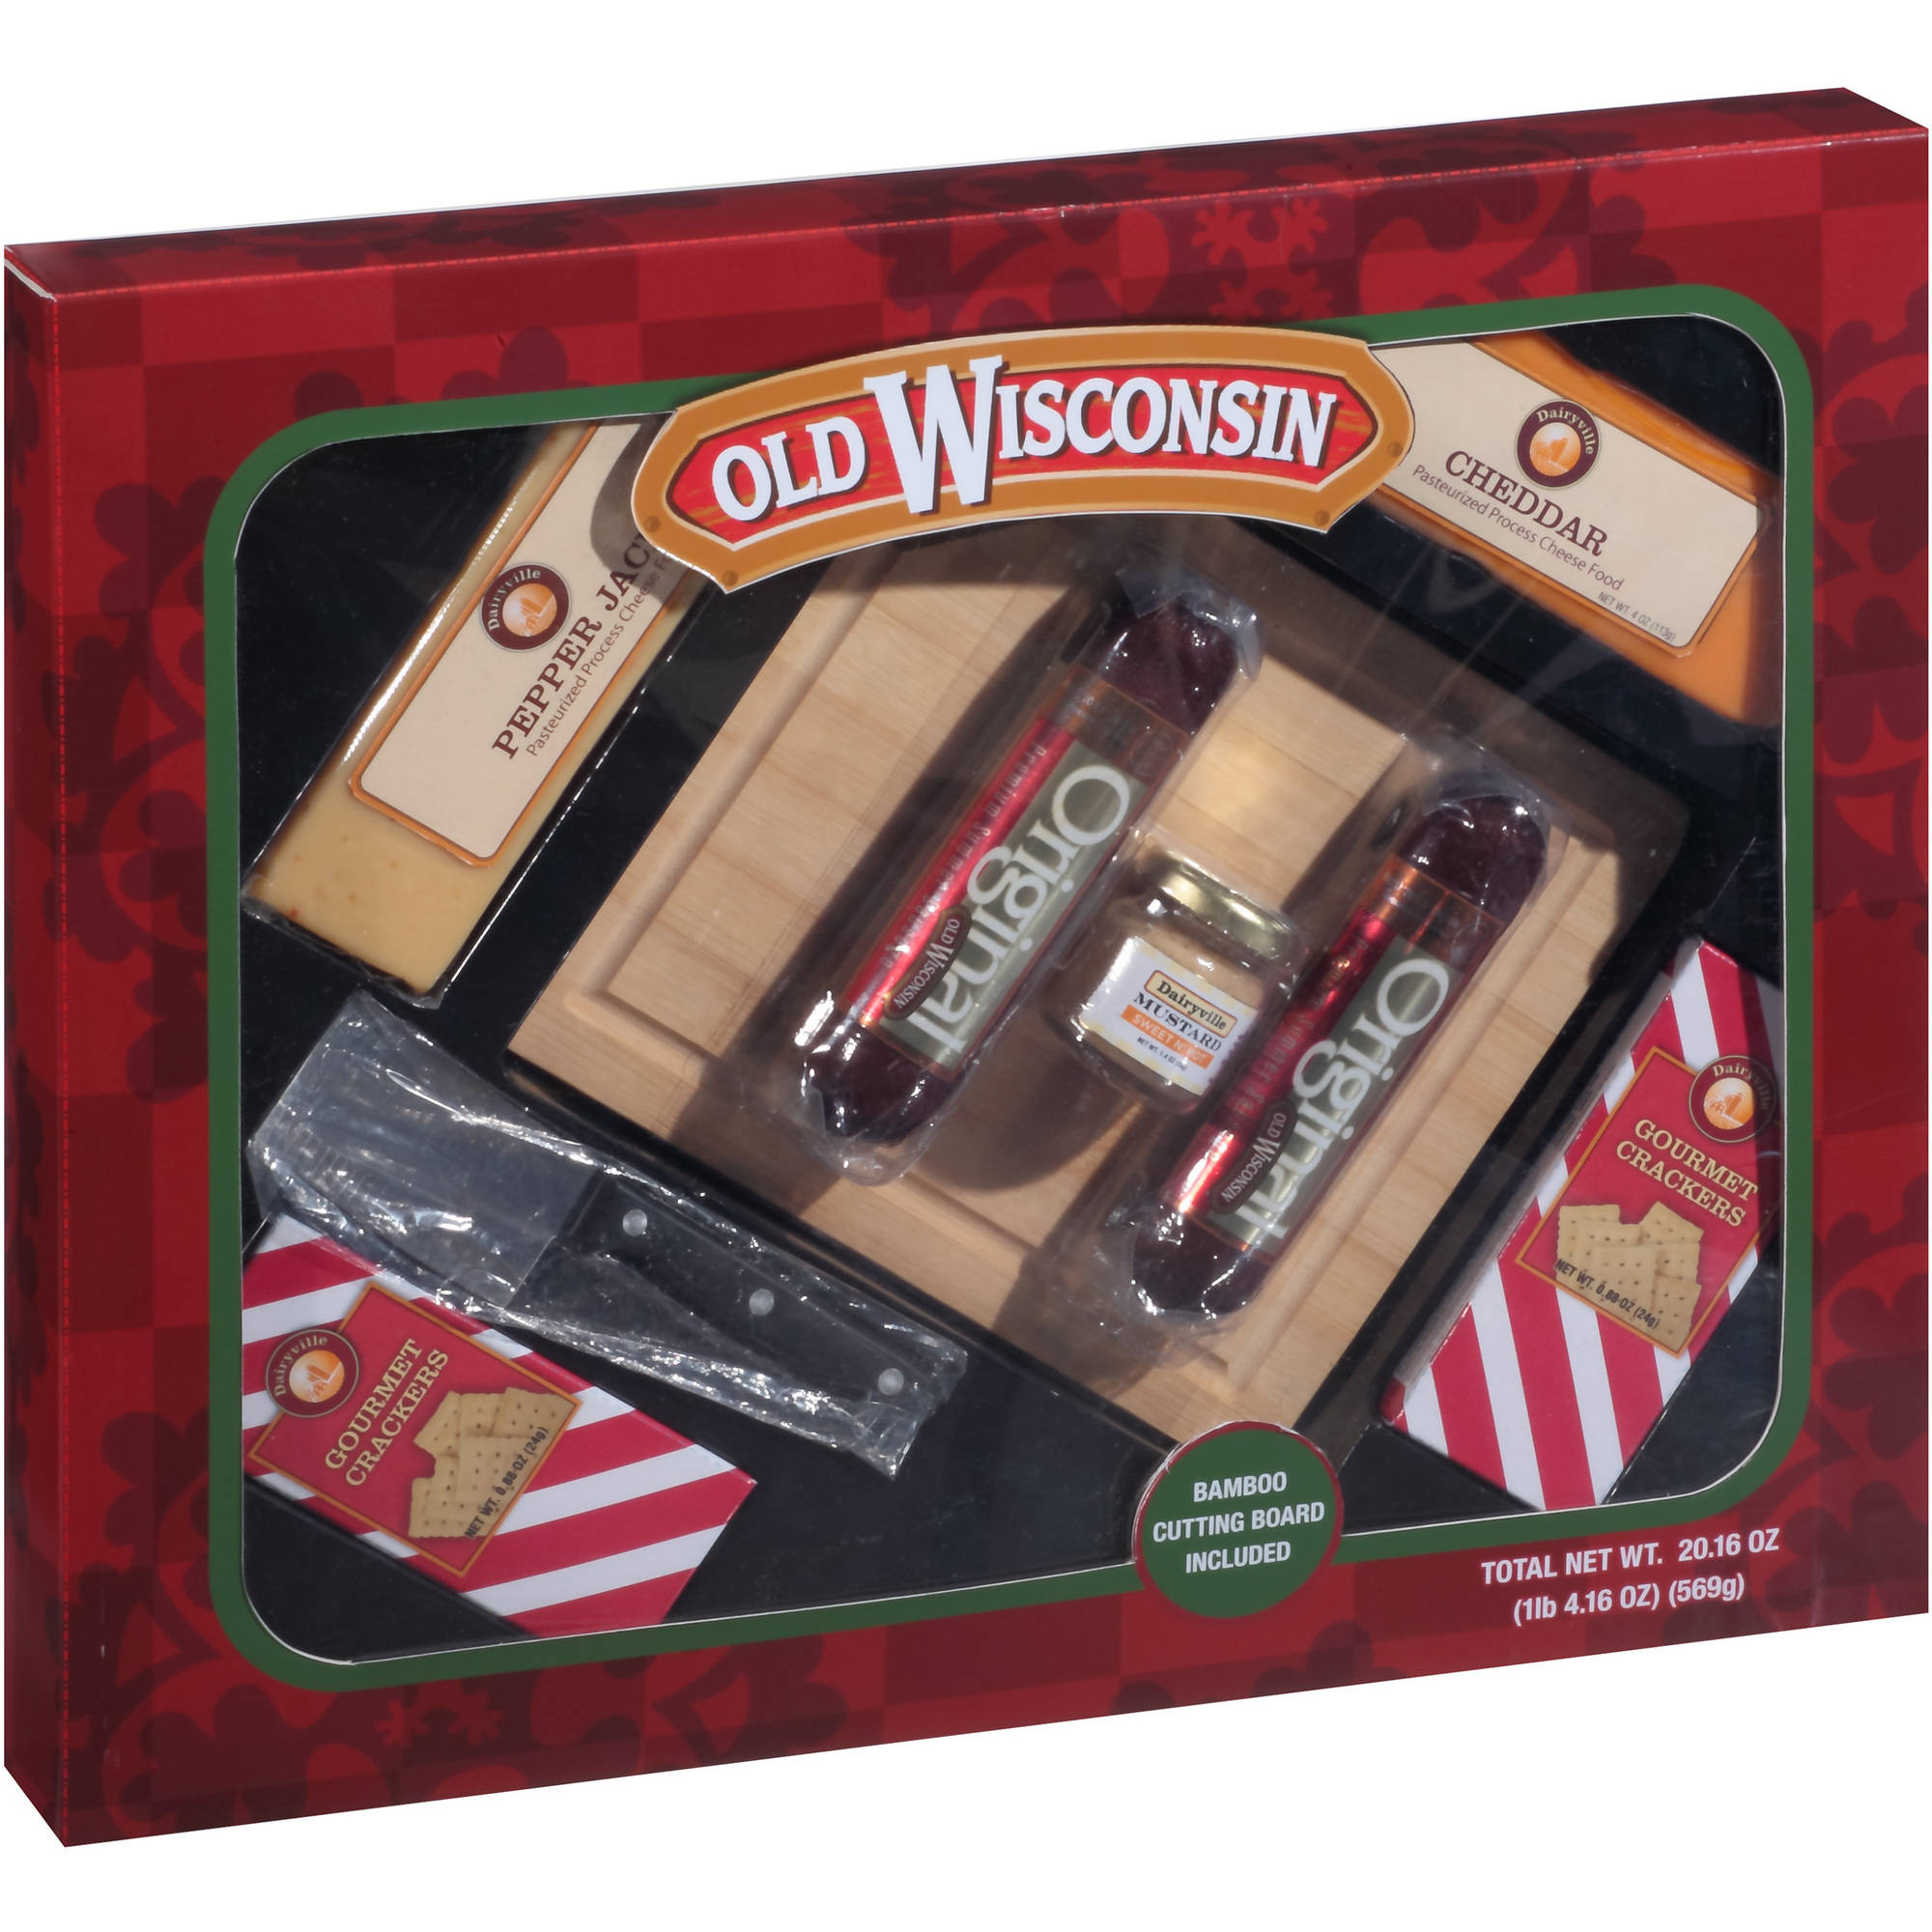 Old Wisconsin Premium Sausage Feast Gift Box